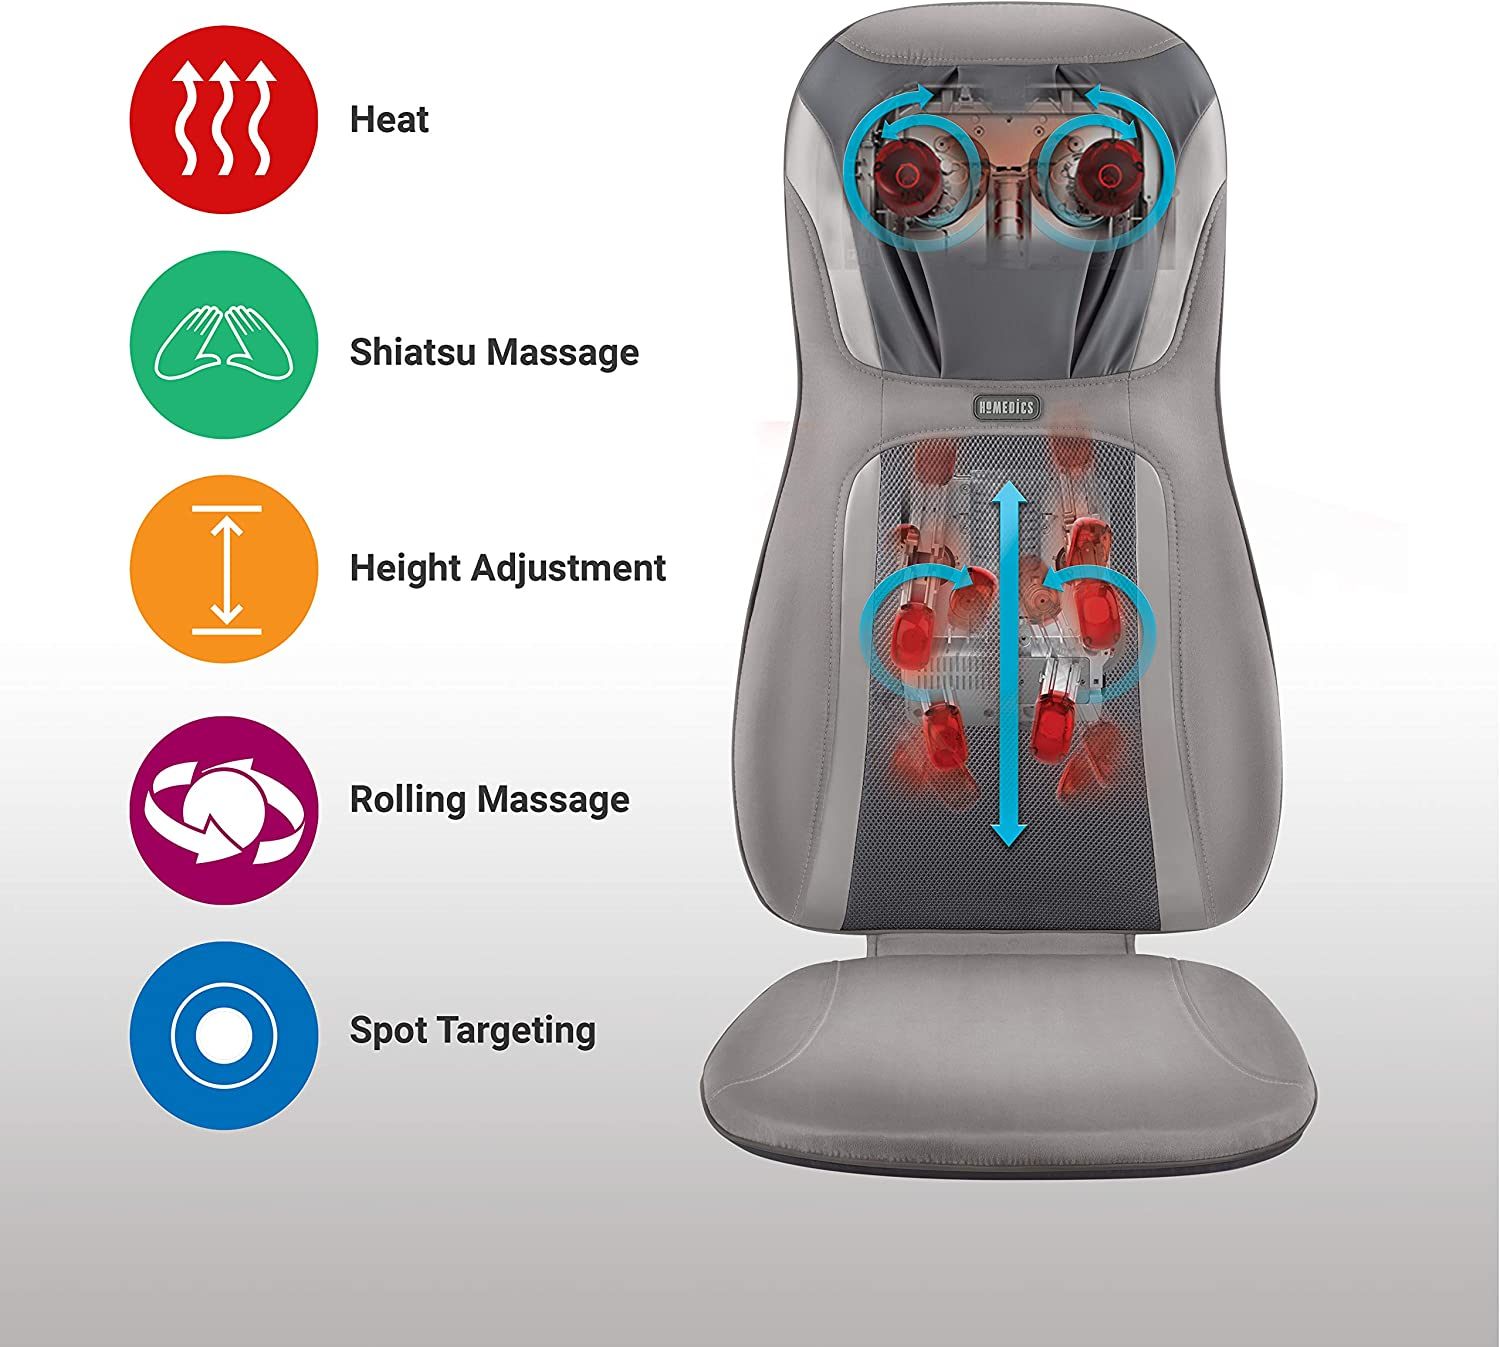 Amazon.com: HoMedics Shiatsu Elite II, MCS-840HA, Shiatsu ...